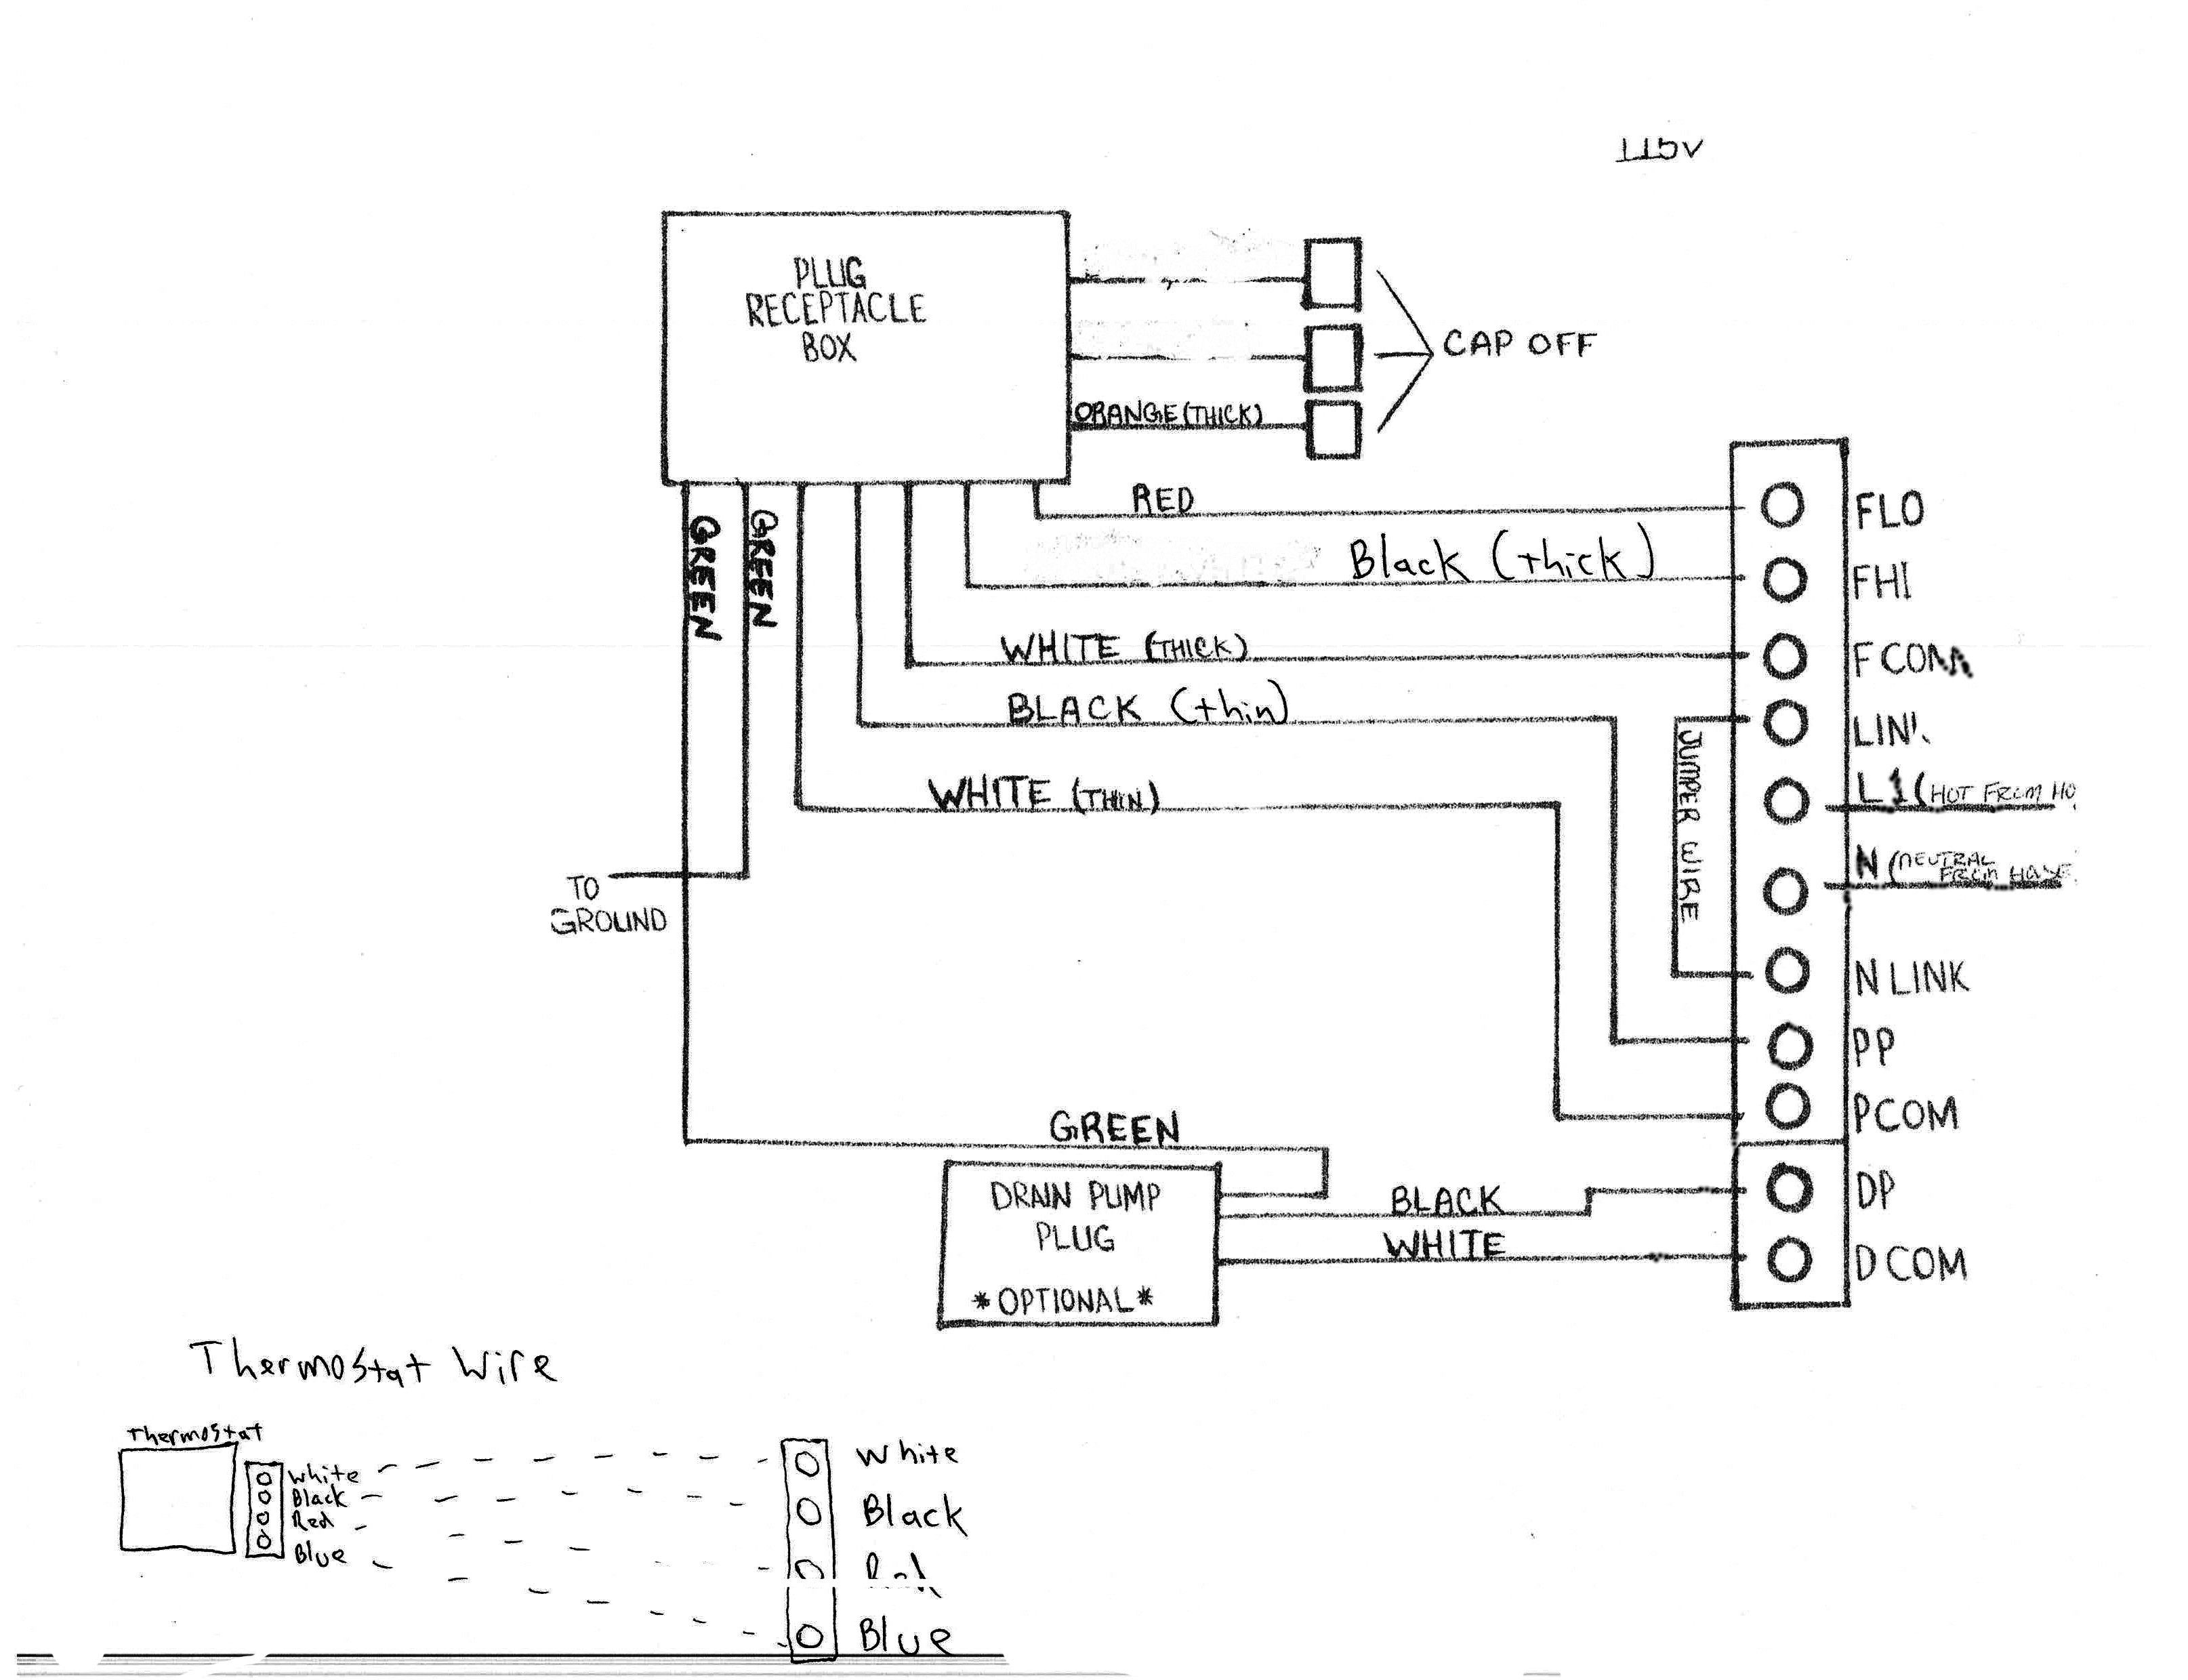 Evaporative Cooler Switch Wiring Diagram | Wiring Diagram - Swamp Cooler Switch Wiring Diagram